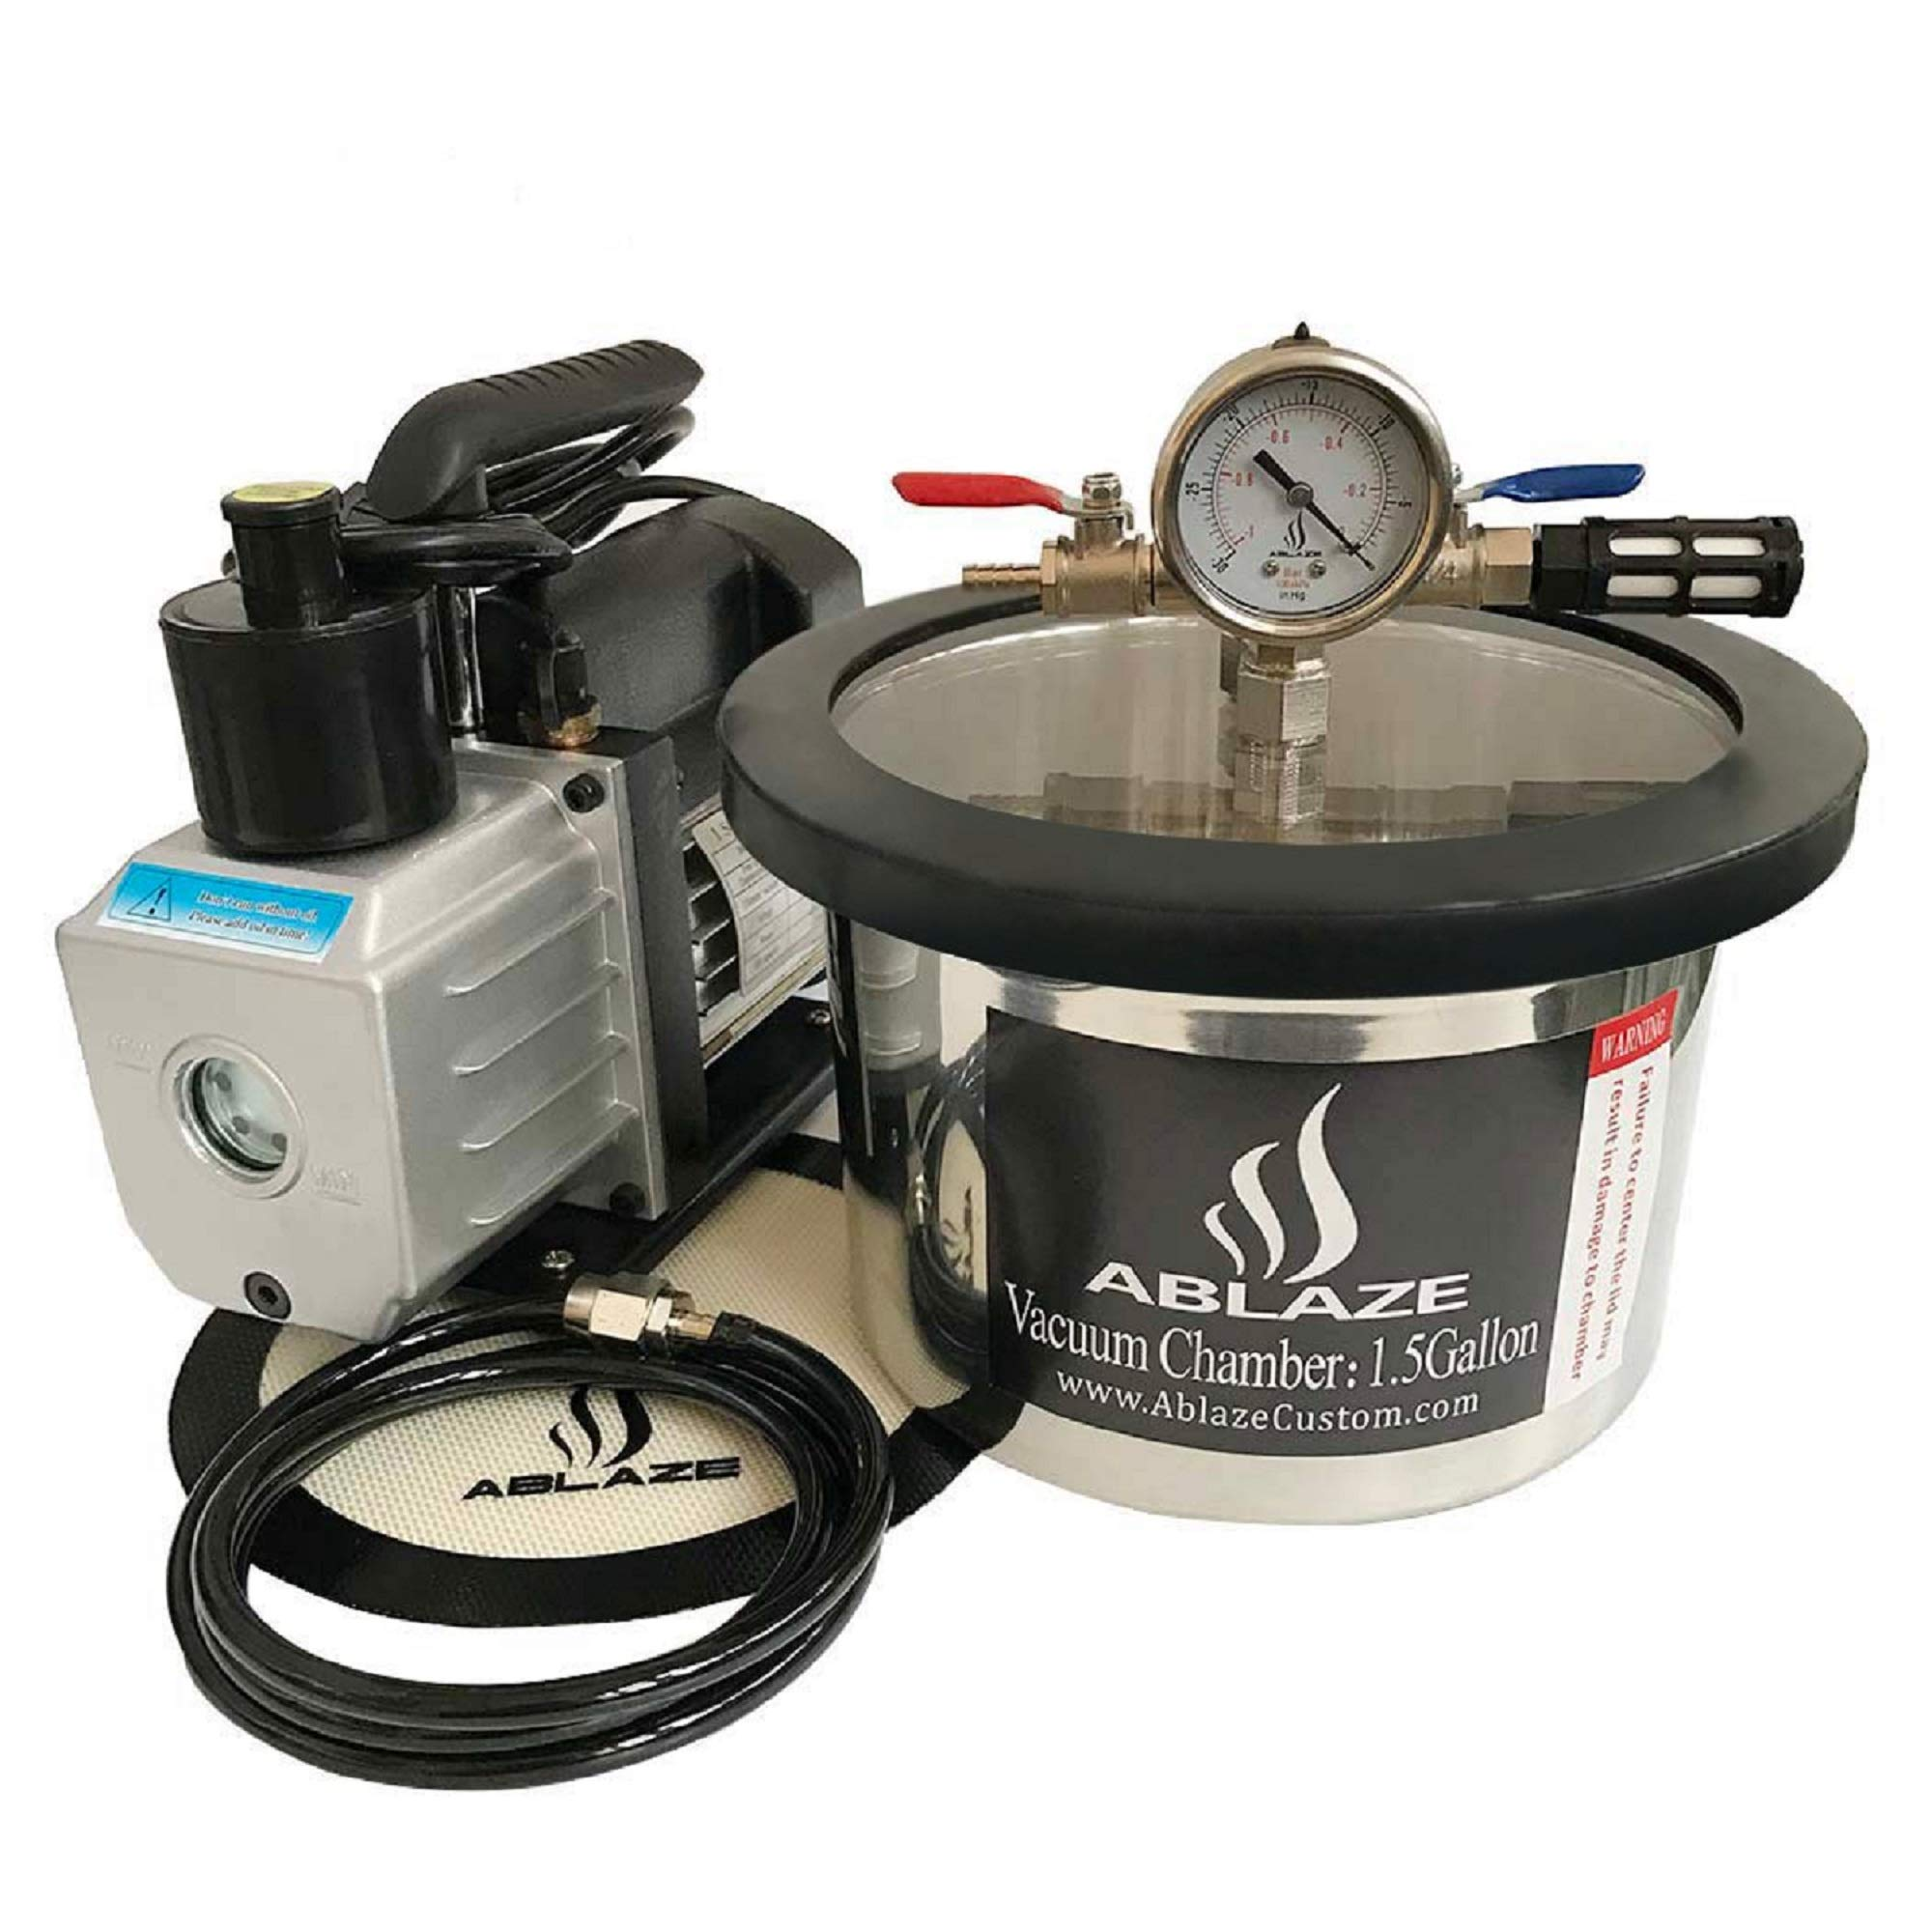 ABLAZE 1.5 Gallon Stainless Steel Vacuum Degassing Chamber and 3 CFM Single Stage Pump Kit